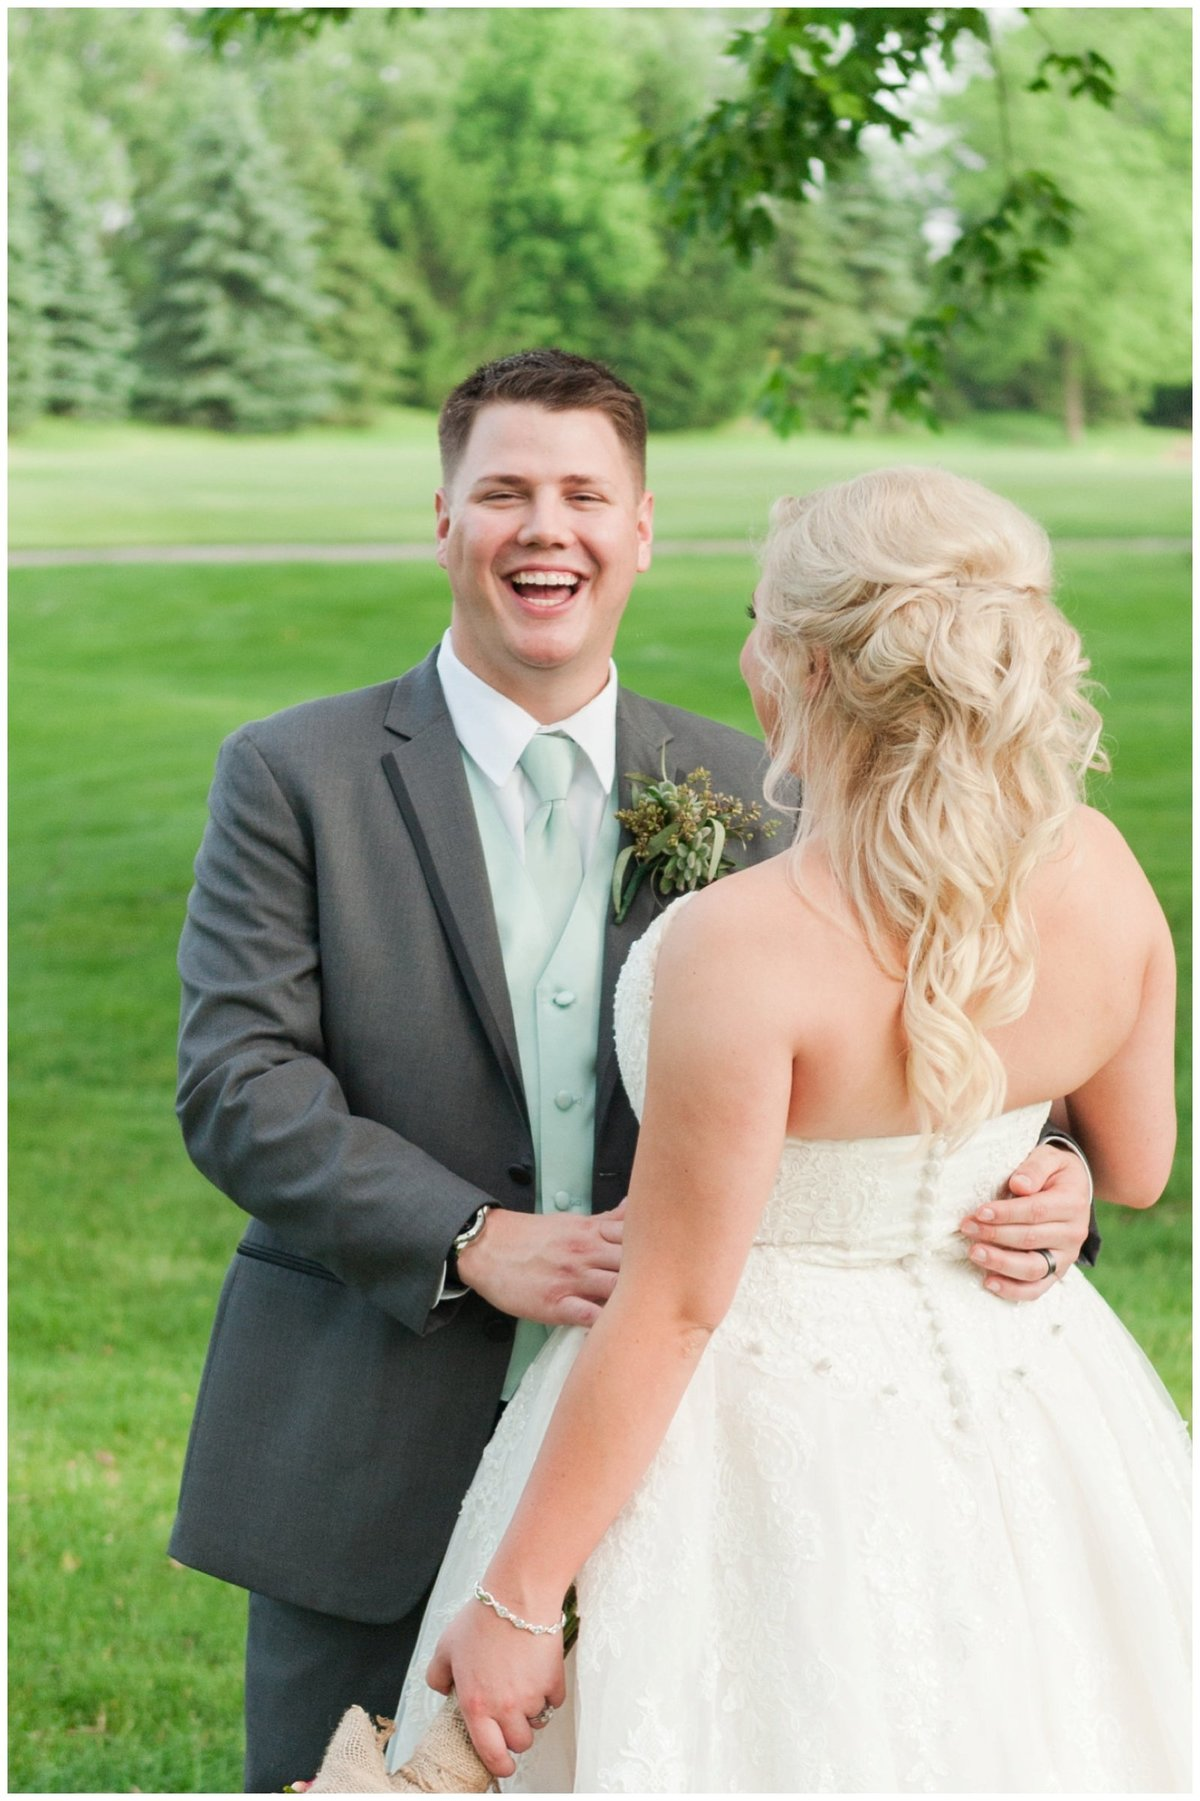 Heritage golf and country club wedding hilliard ohio wedding photos_0002